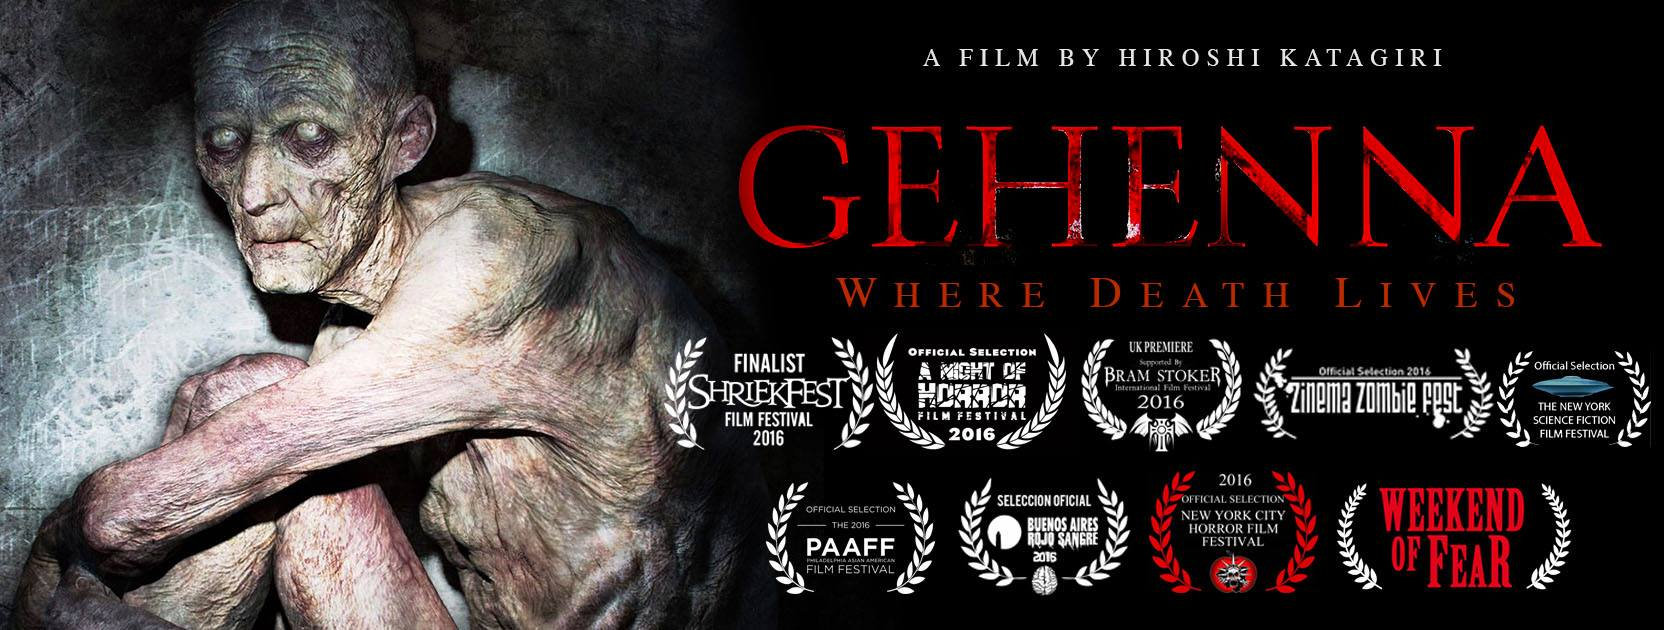 Gehenna Where Death Lives